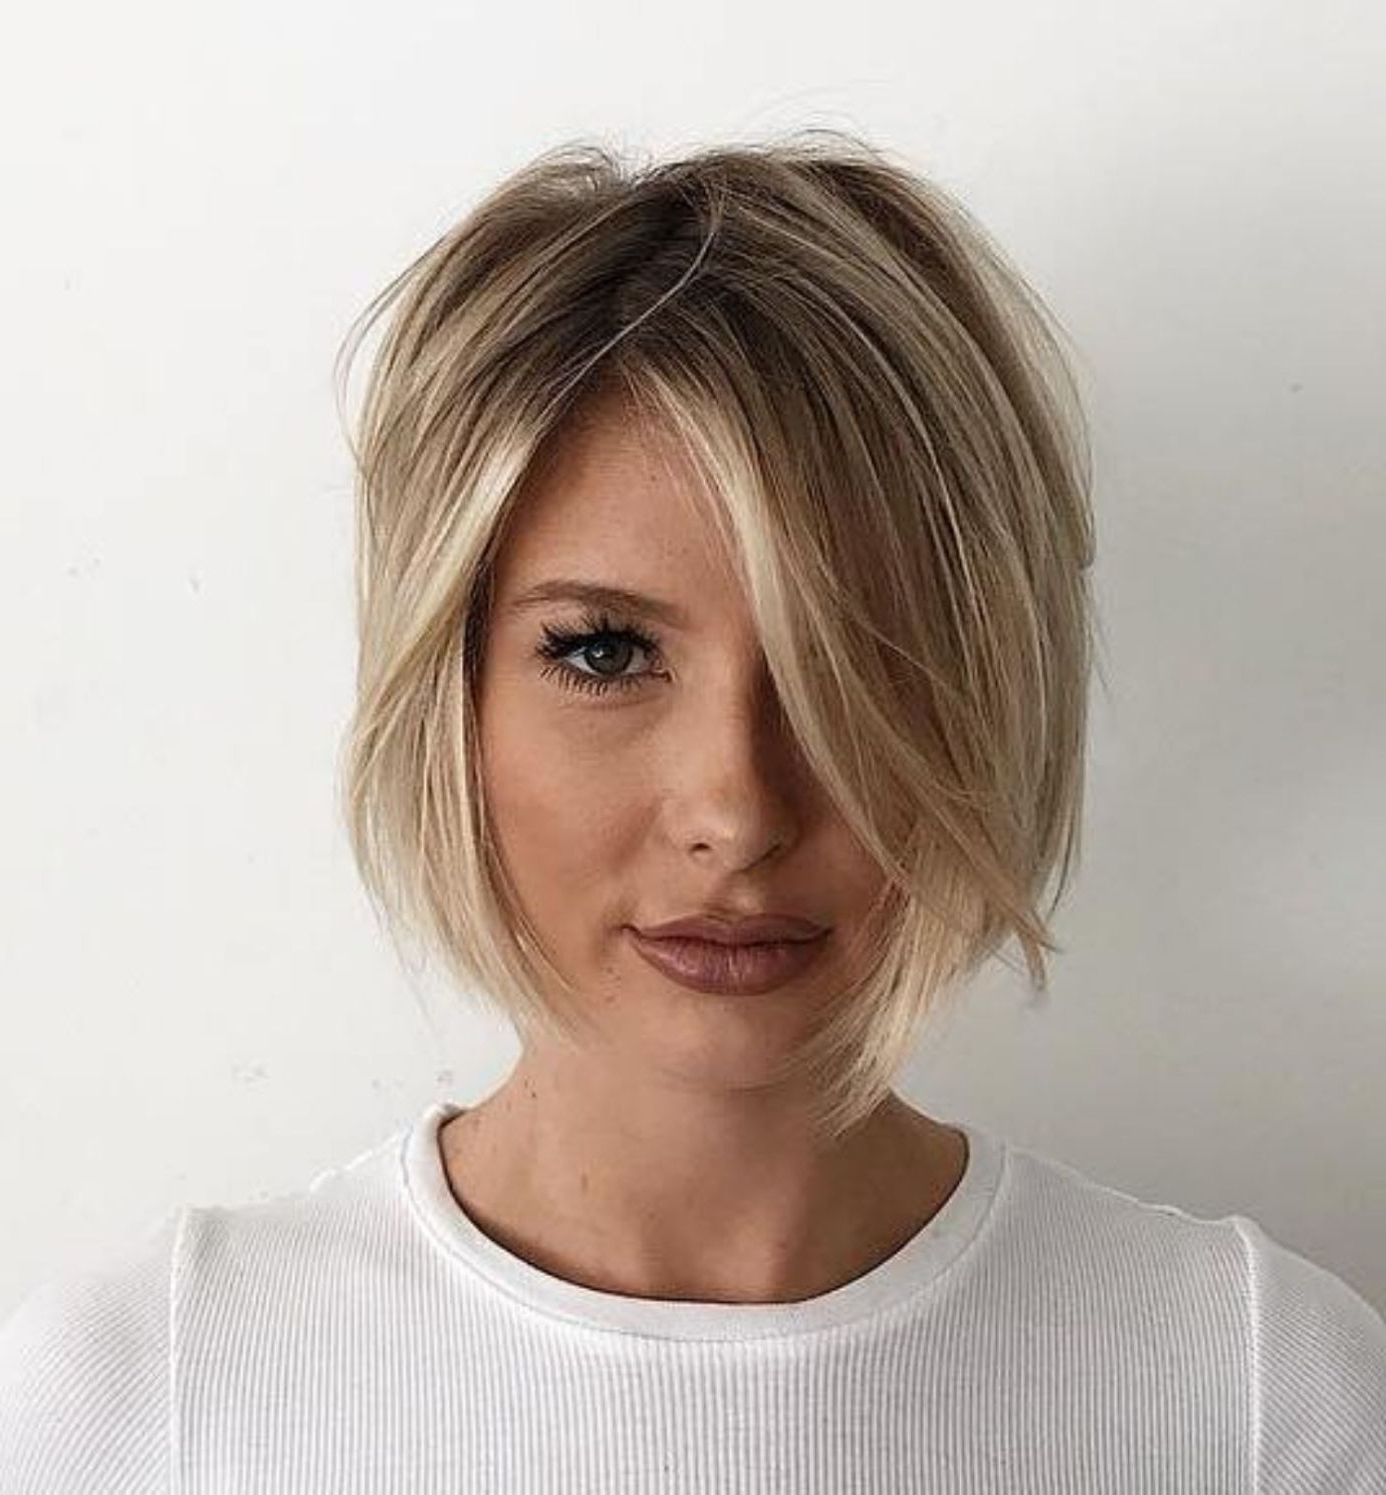 70 Winning Looks With Bob Haircuts For Fine Hair In 2019 Within Asymmetrical Shaggy Bob Hairstyles (View 10 of 20)